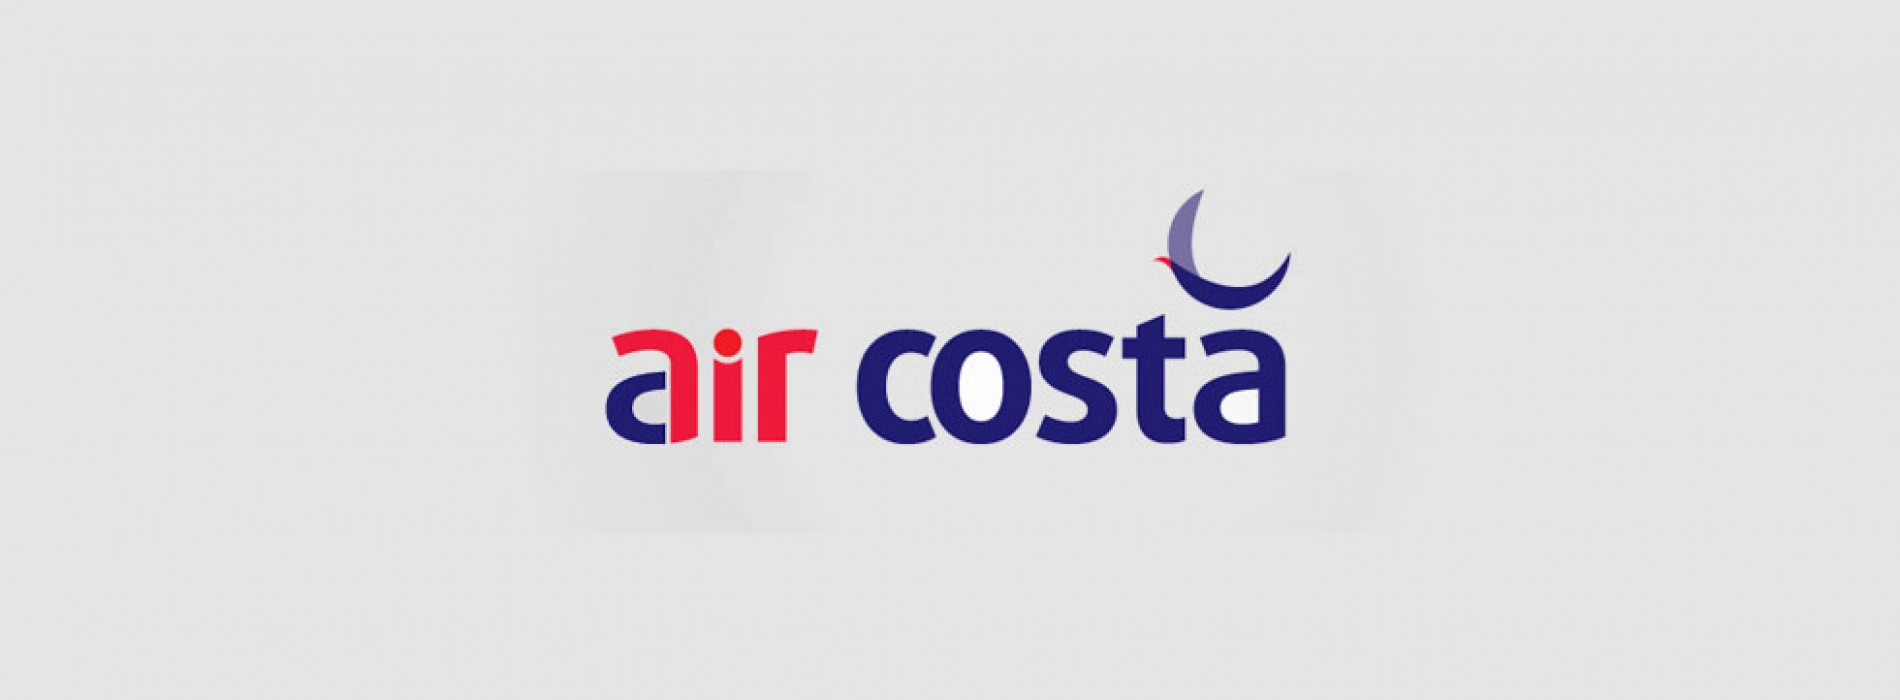 Air Costa, GoAir join SpiceJet with discounted fares